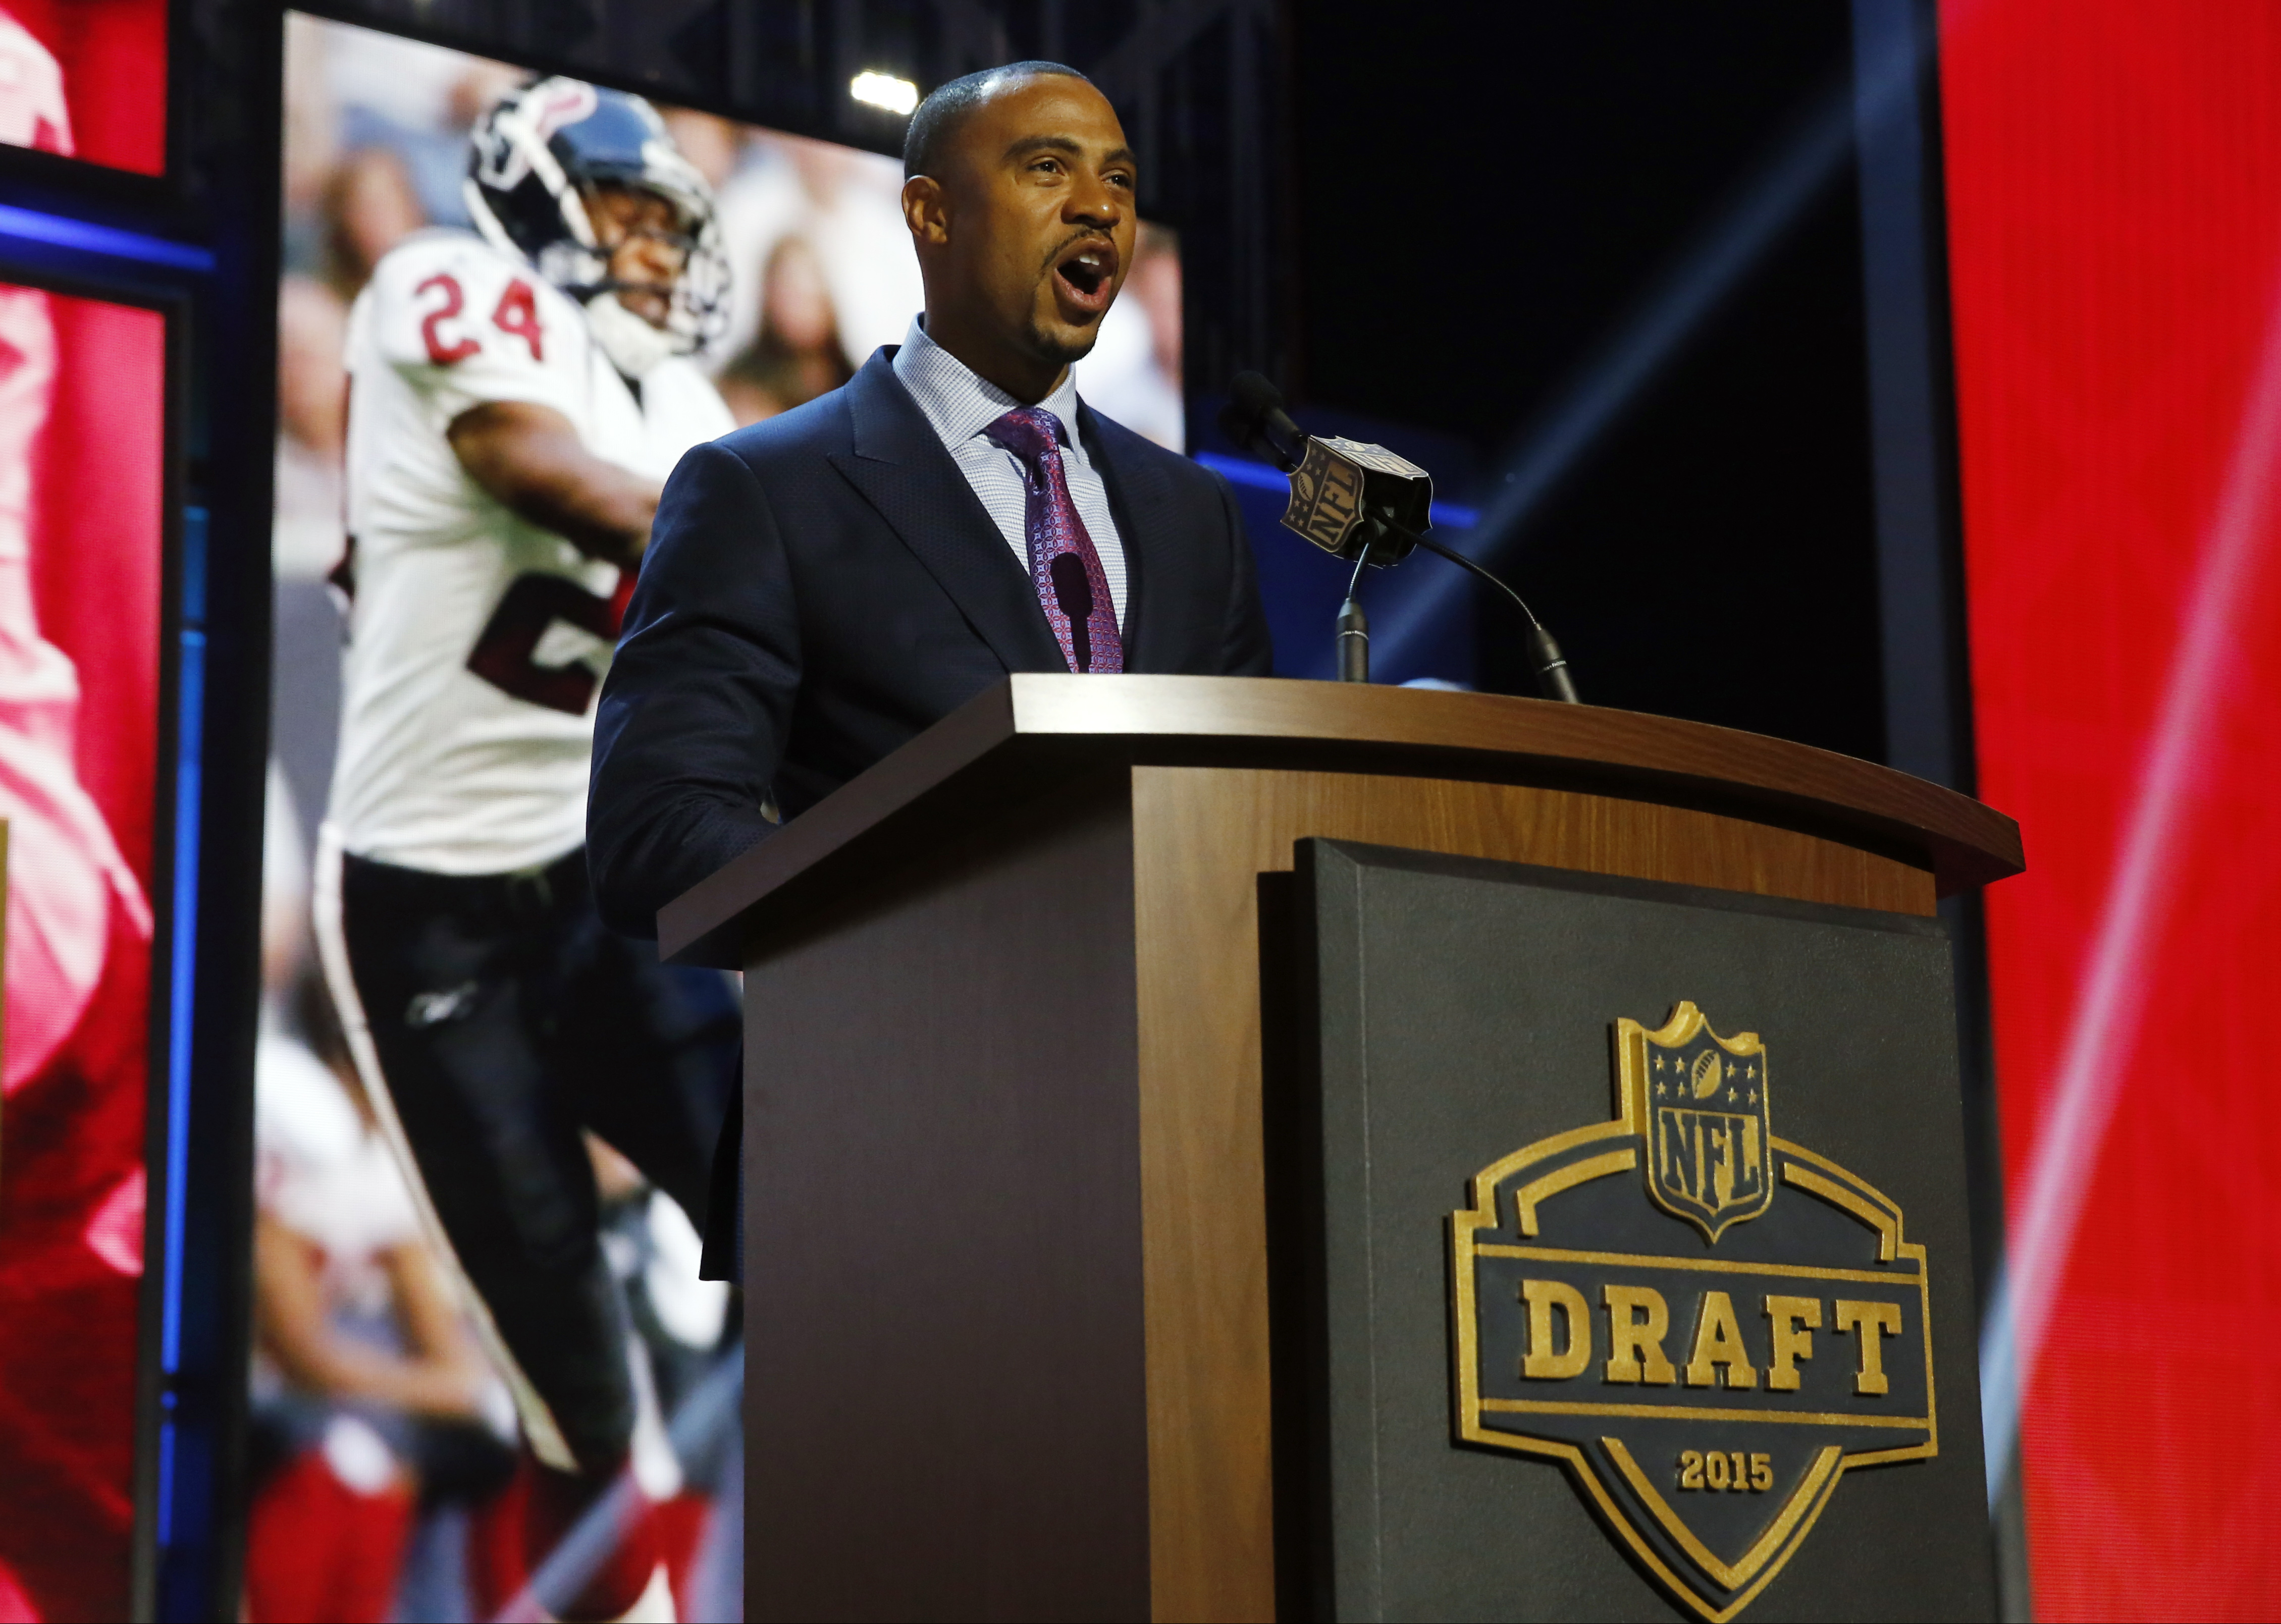 Former NFL player Eric Brown announces the Houston Texans selects Mississippi State linebacker Benardrick Mckinney as the 43rd pick in the second round of the 2015 NFL Football Draft,  Friday, May 1, 2015, in Chicago. (AP Photo/Charles Rex Arbogast)